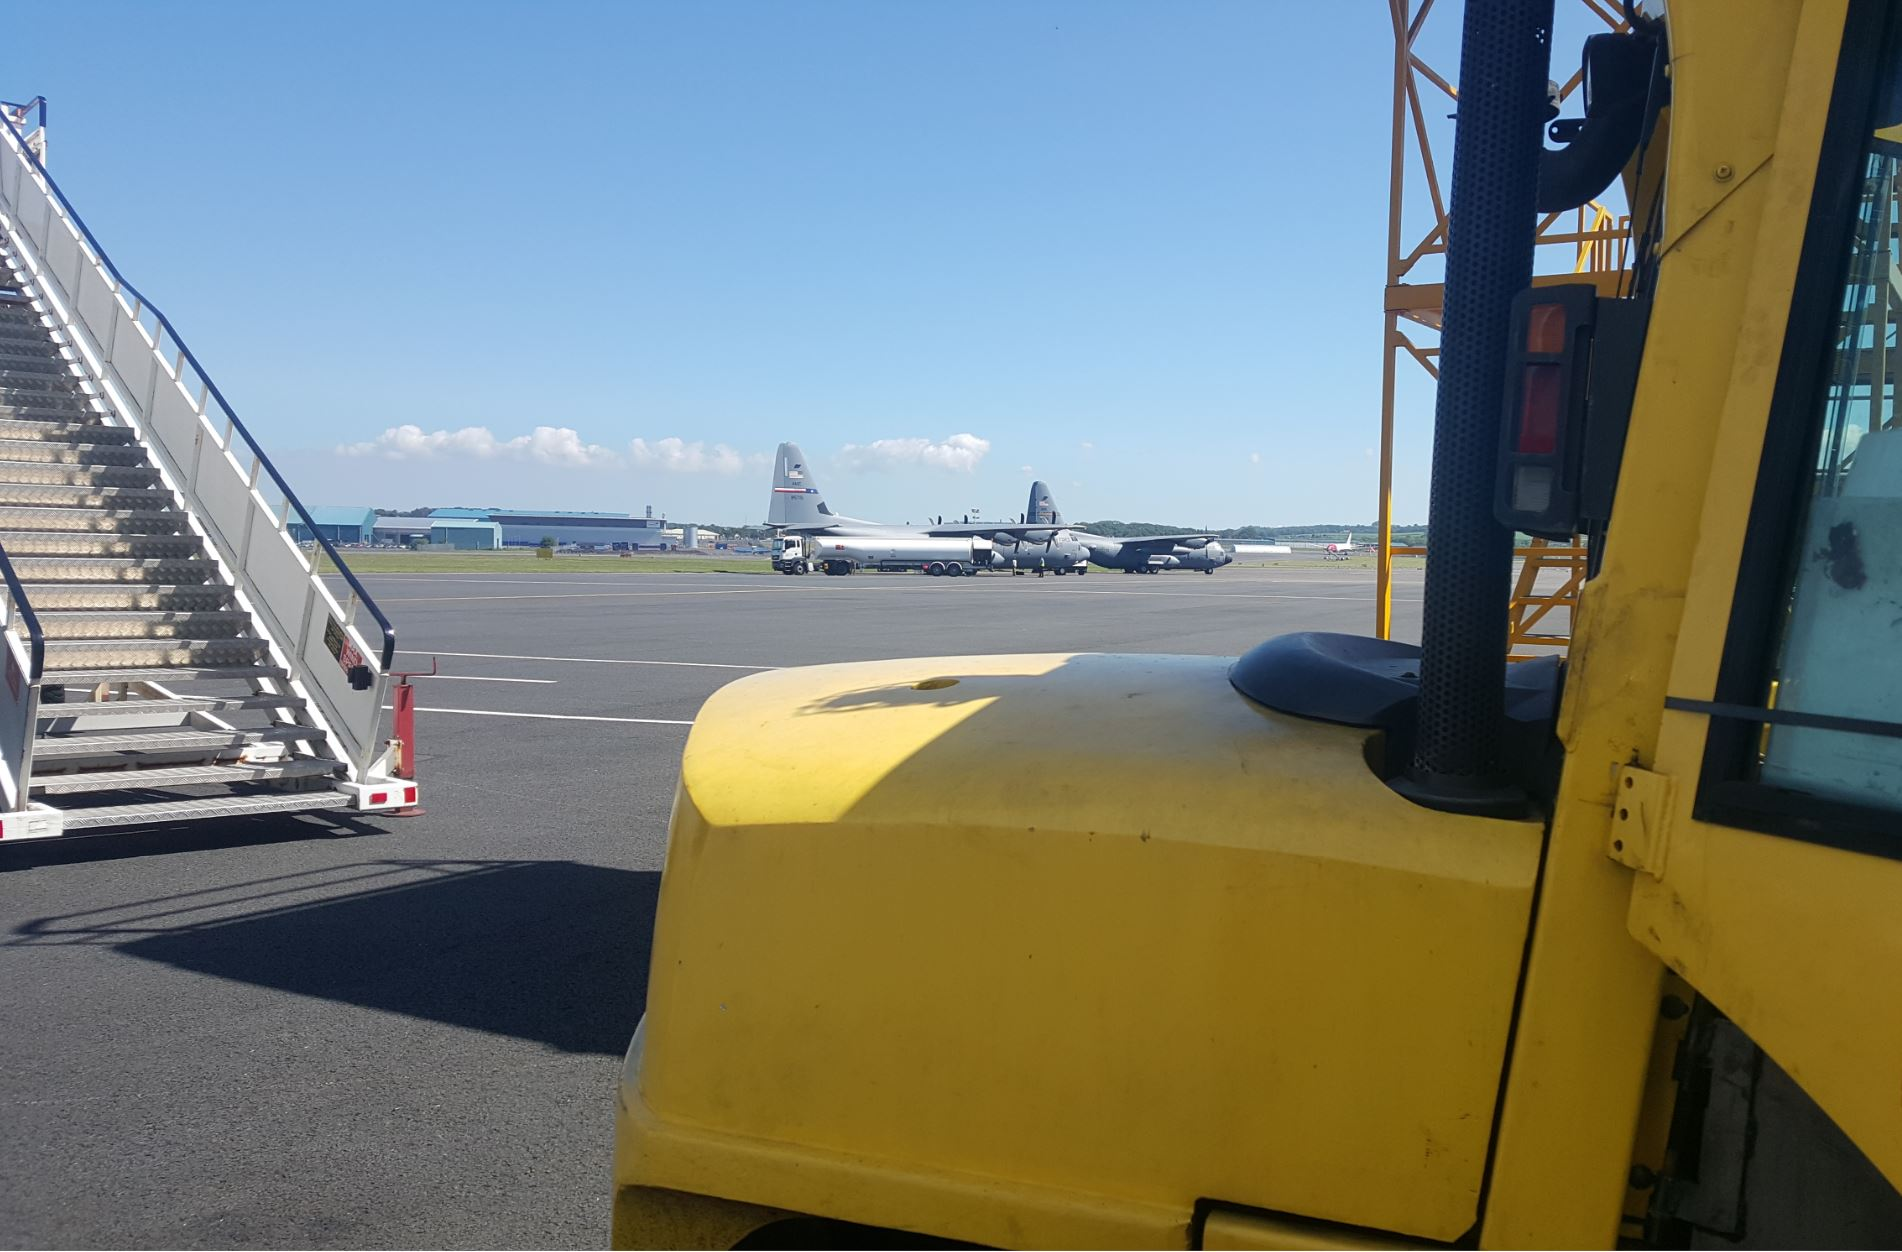 Yellow vehicle parked on the runway of an airport with plans on the tarmac in the background